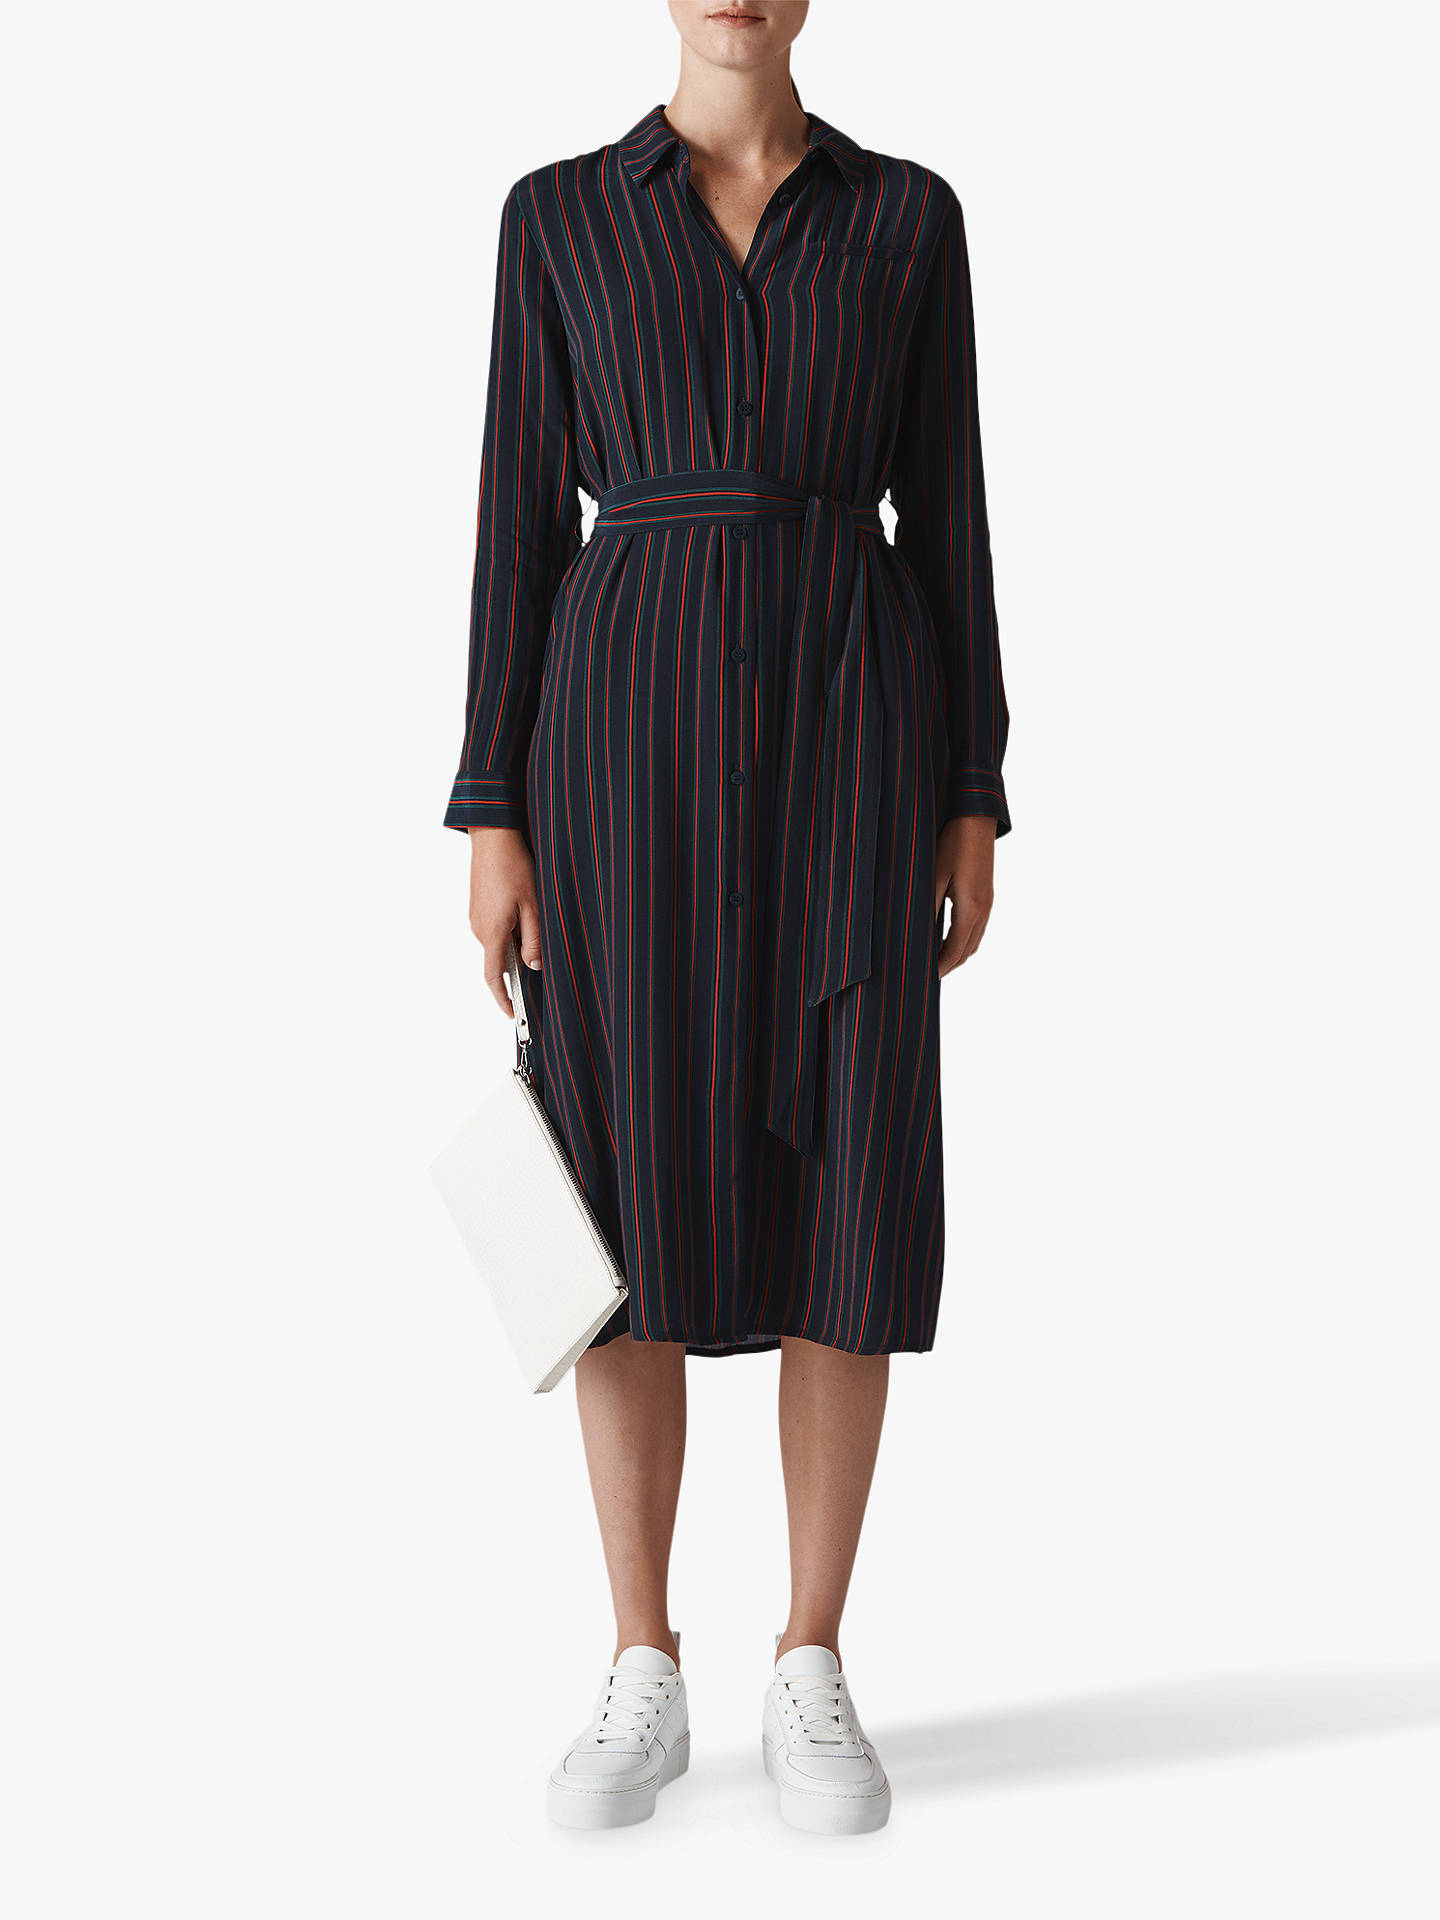 Whistles Stripe Longline Shirt Dress Bluered At John Lewis Partners